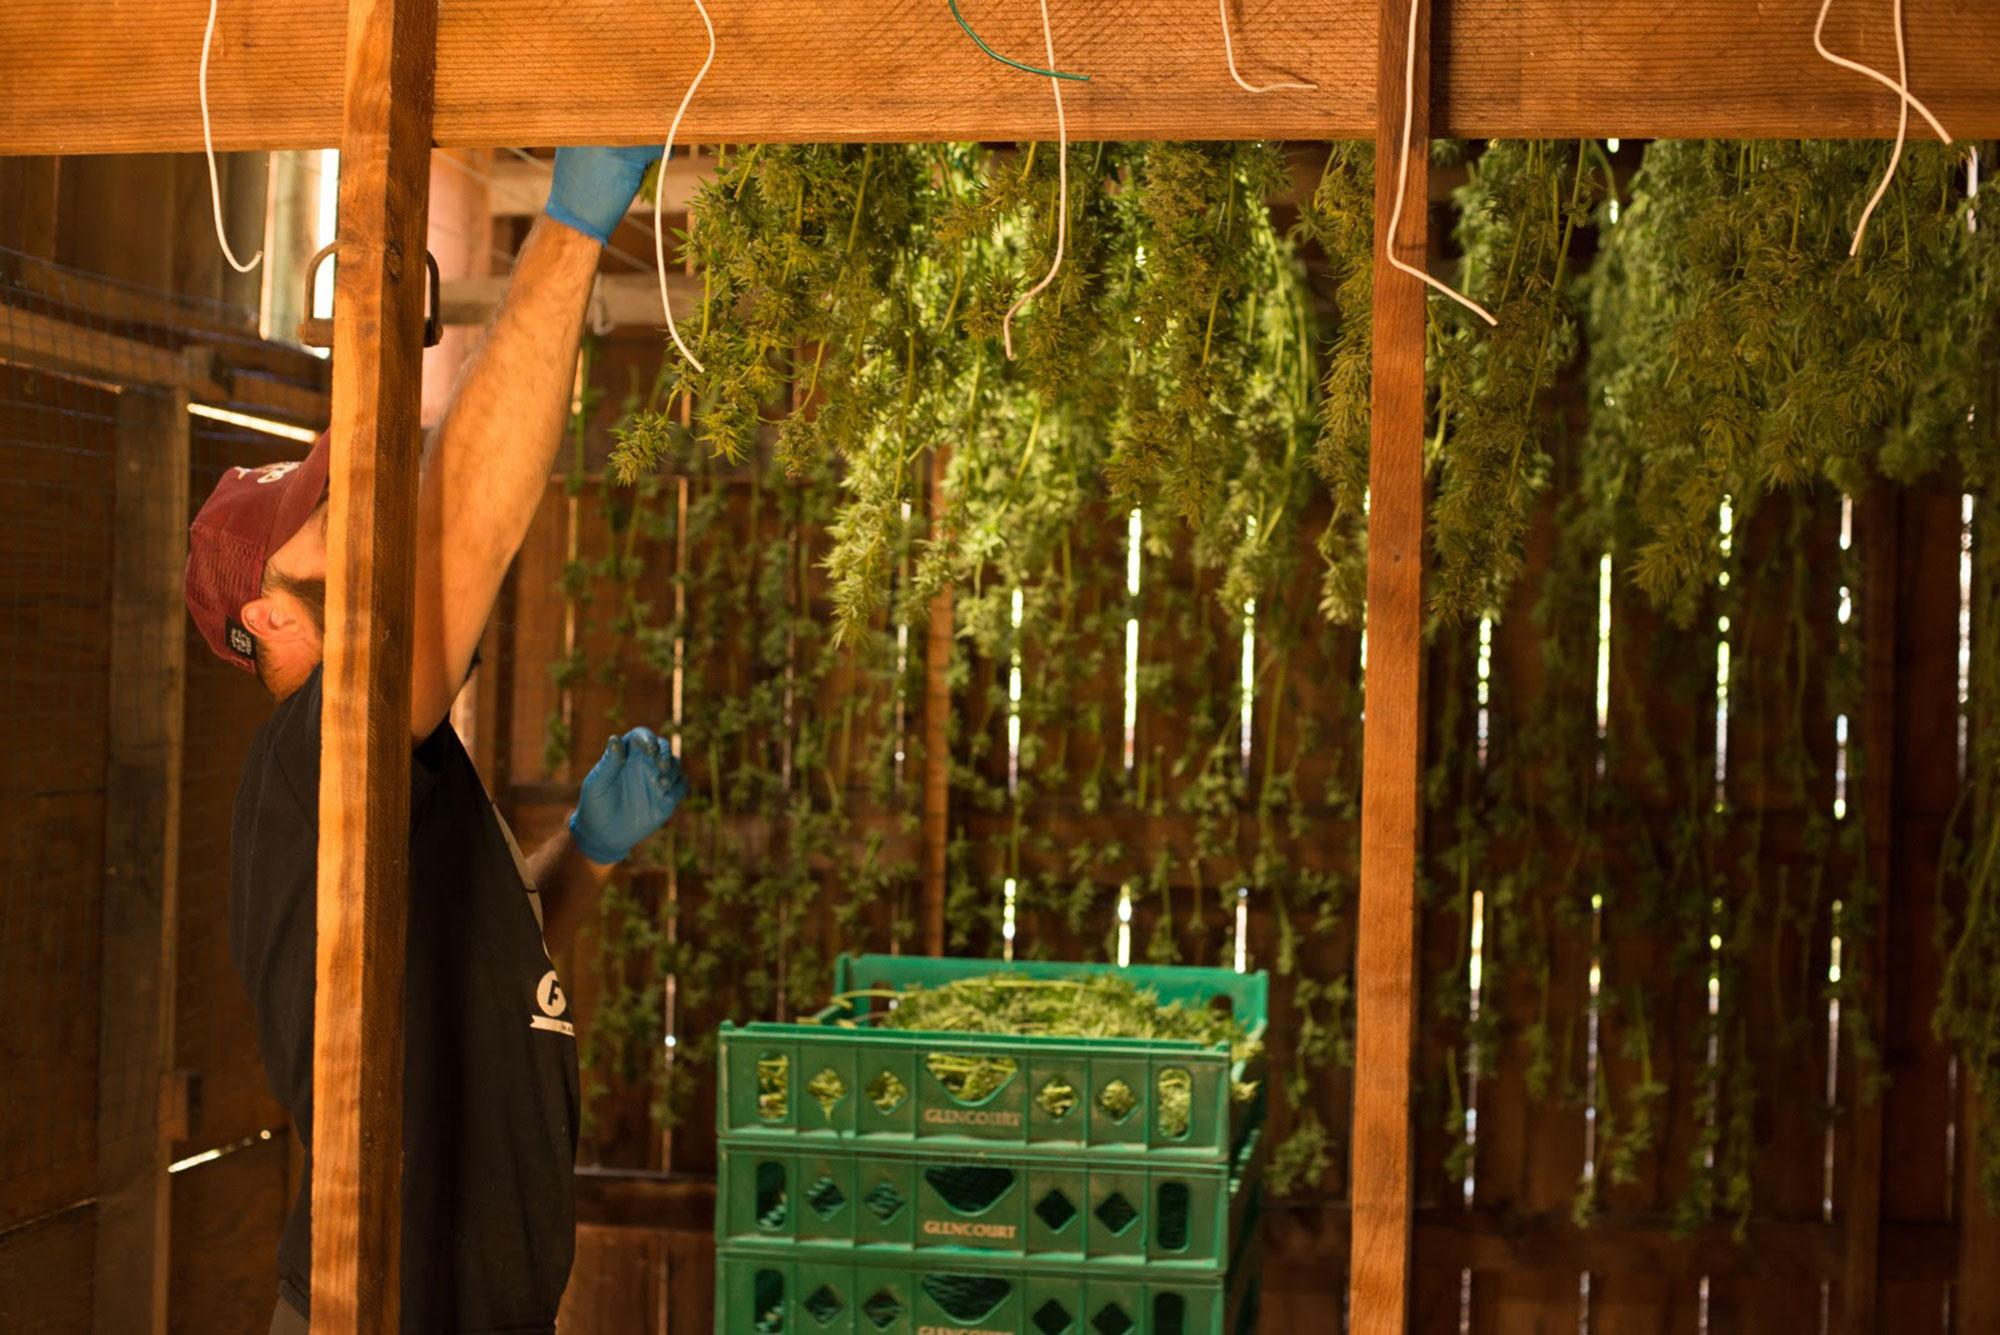 <p>Brad hangs his medical marijuana plants in preparation for selling them to a dispensary. (Photo: Deleigh Hermes for Yahoo News) </p>